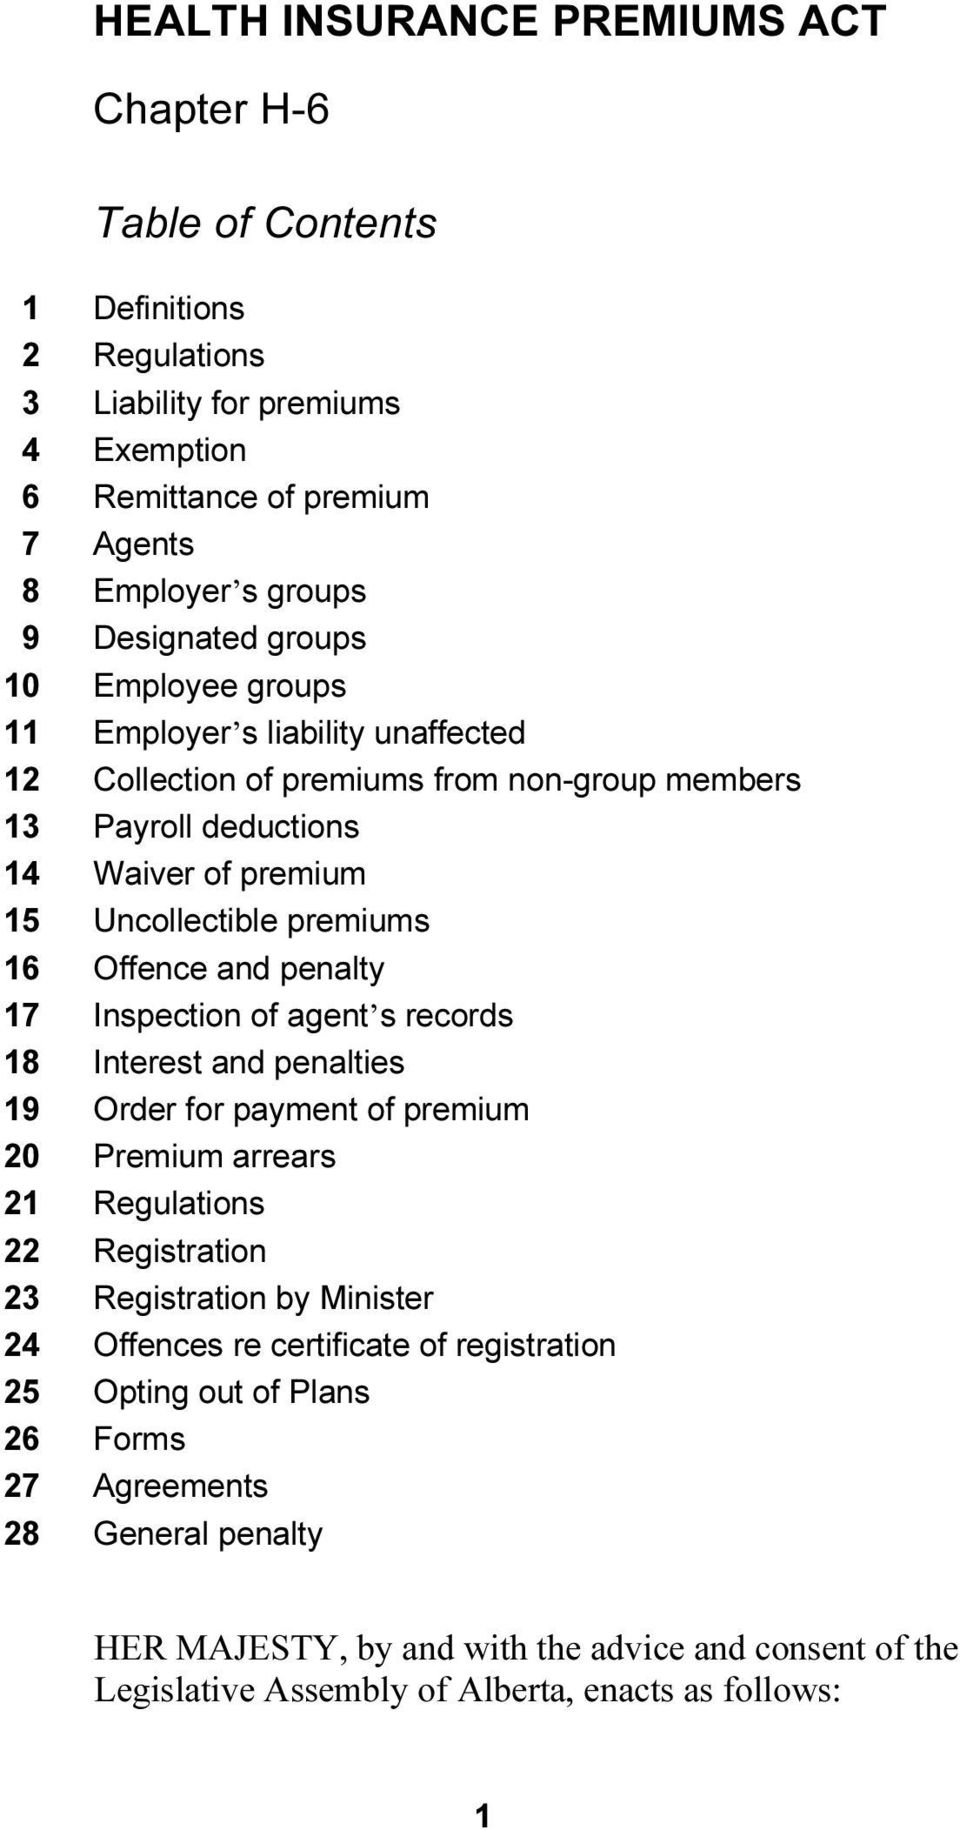 17 Inspection of agent s records 18 Interest and penalties 19 Order for payment of premium 20 Premium arrears 21 Regulations 22 Registration 23 Registration by Minister 24 Offences re